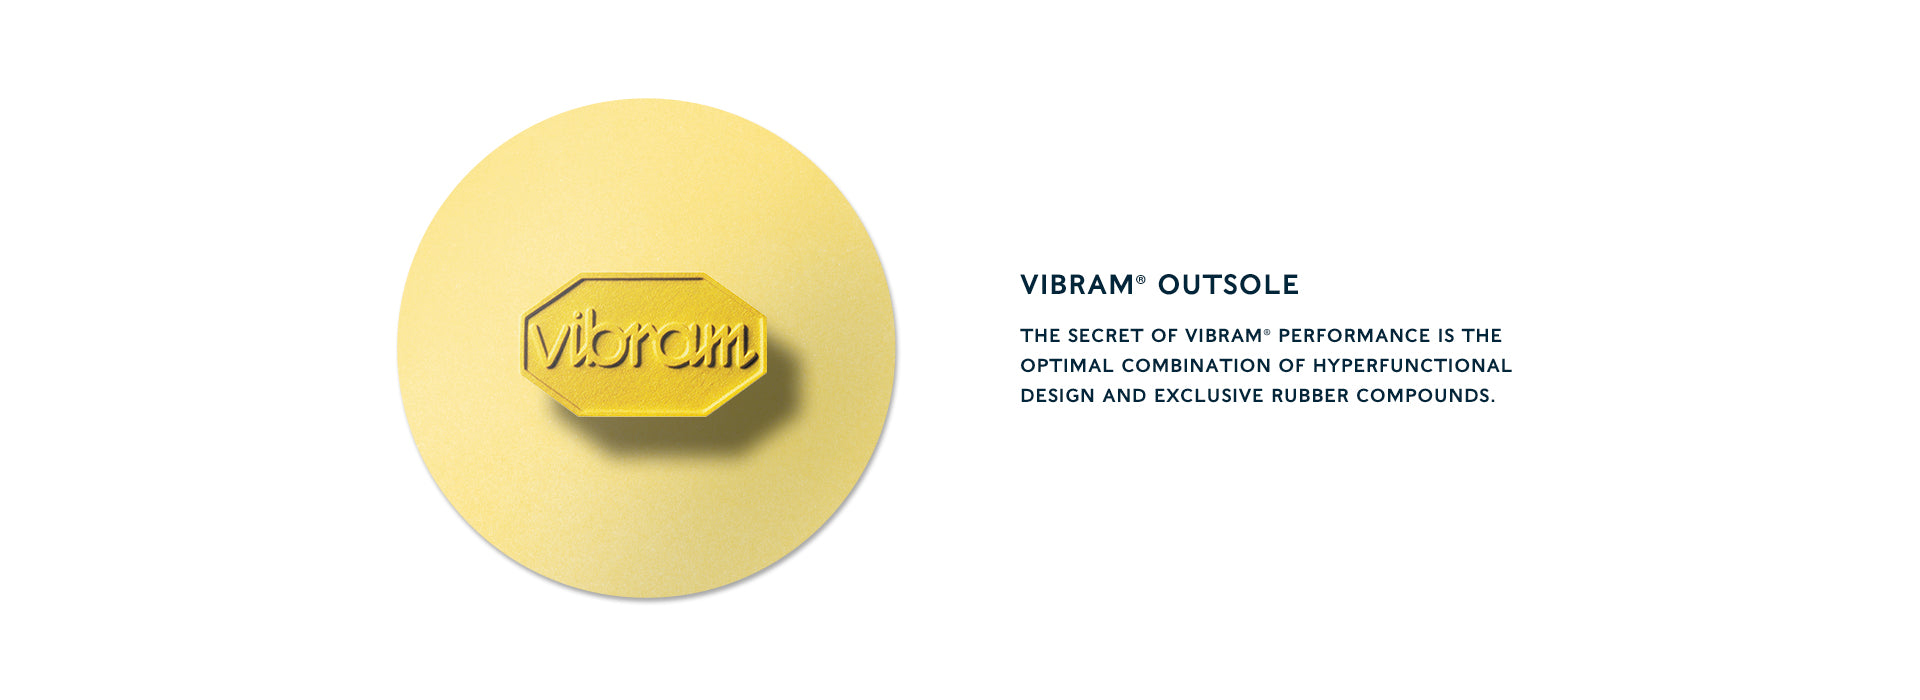 vibram® outsole The secret of Vibram® performance is the optimal combination of hyperfunctional design and exclusive rubber compounds.